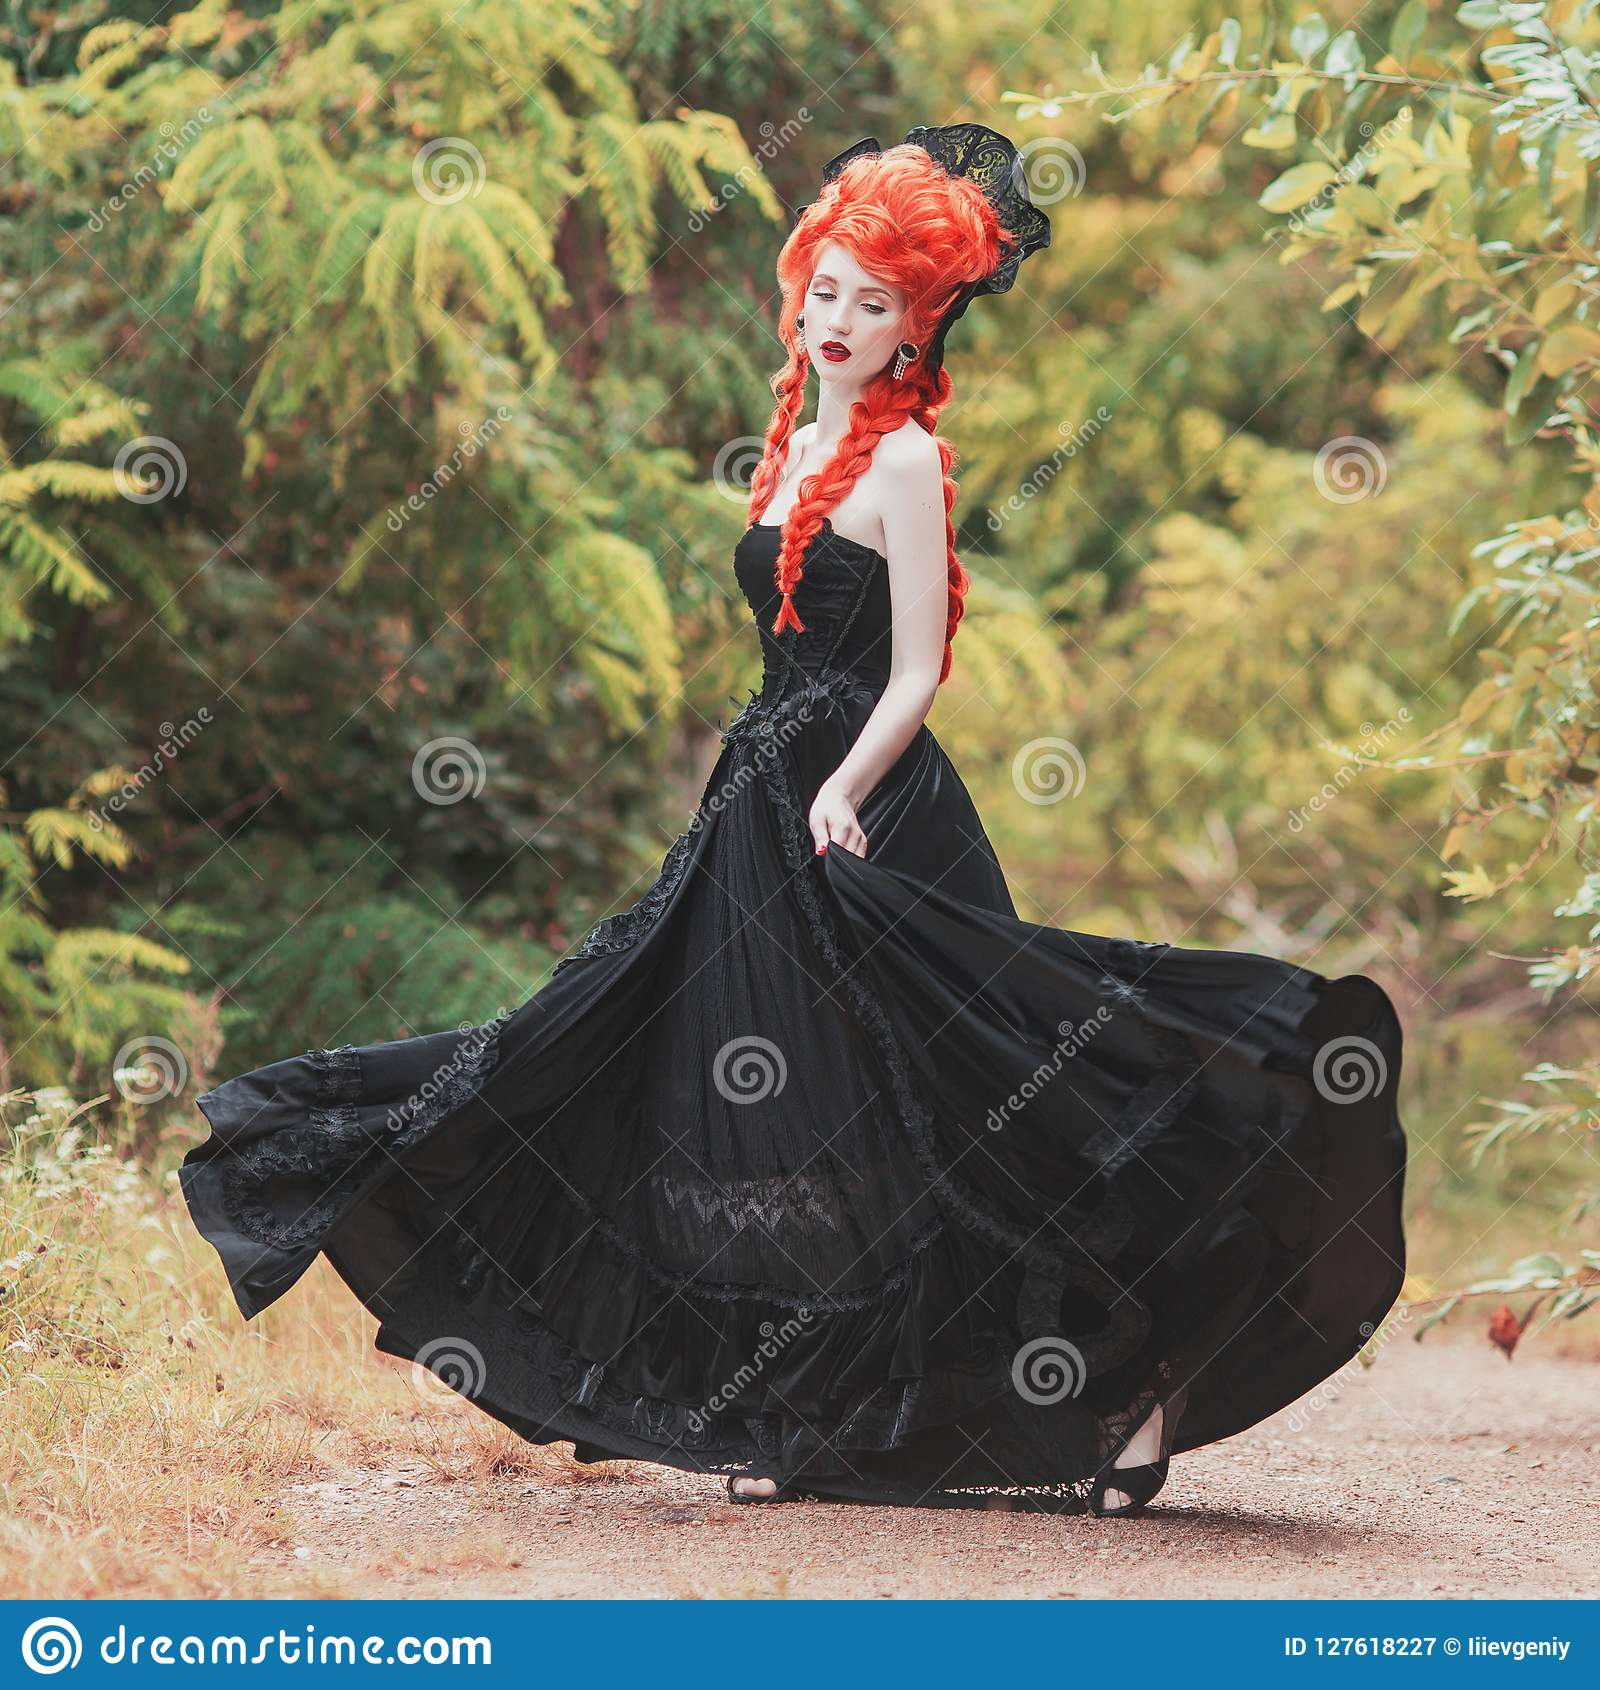 Gothic halloween clothes. Young victorian redhead queen with hairstyle. Lady with red hair. Vampire with pale skin. Victorian outf